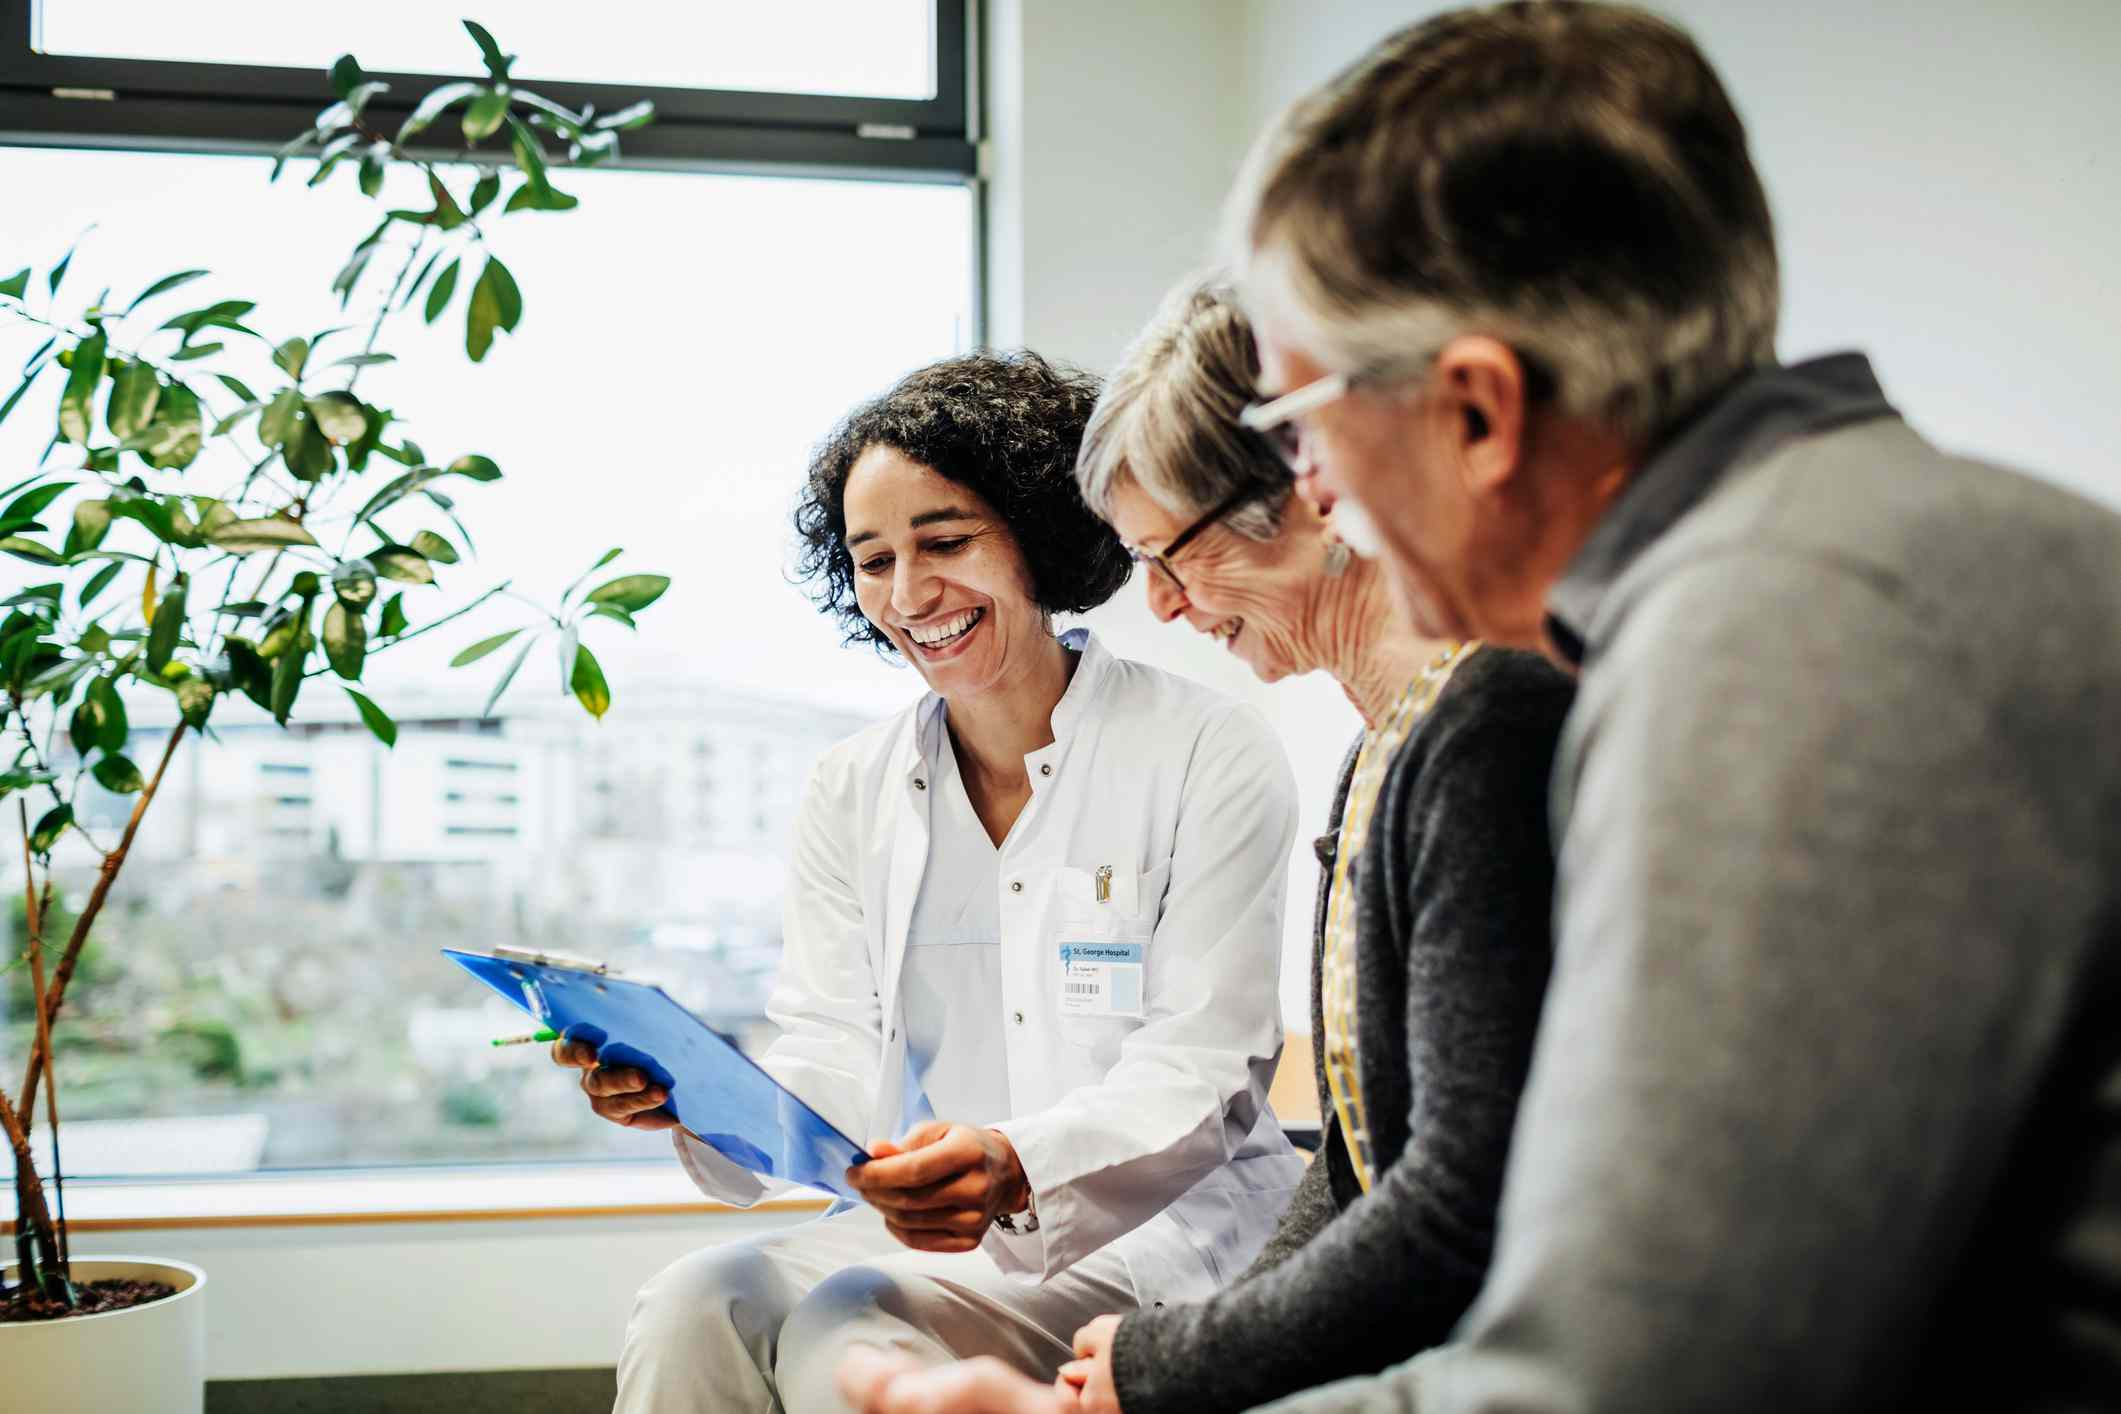 Doctor pleased with older couple's test results